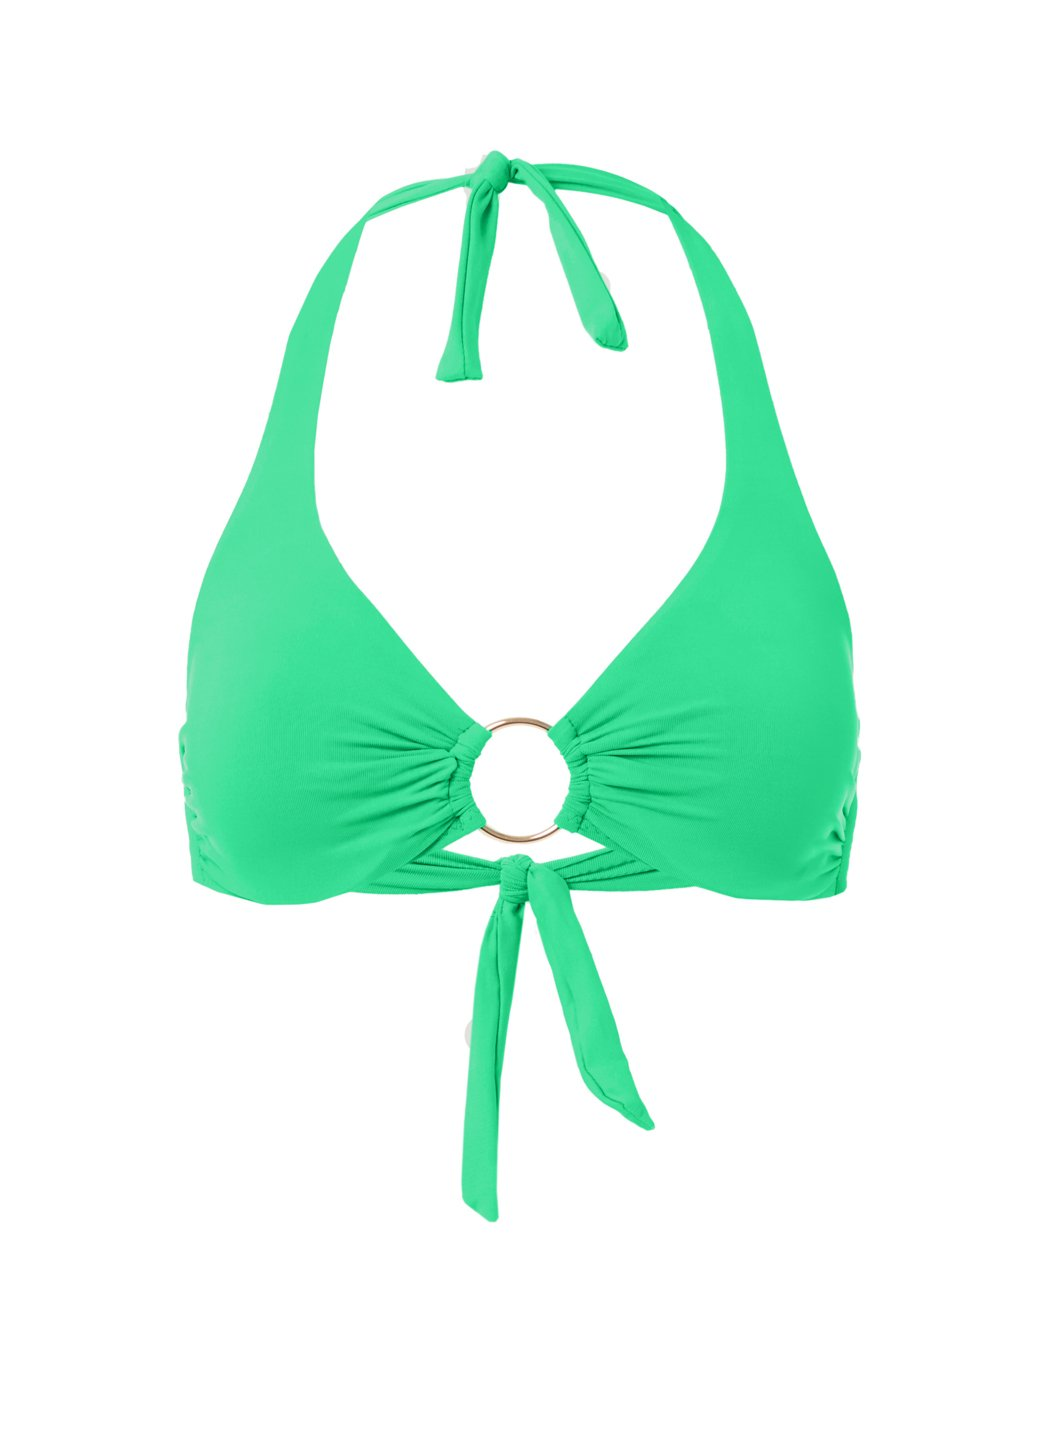 Brussels Green Halterneck Ring Supportive Bikini Top